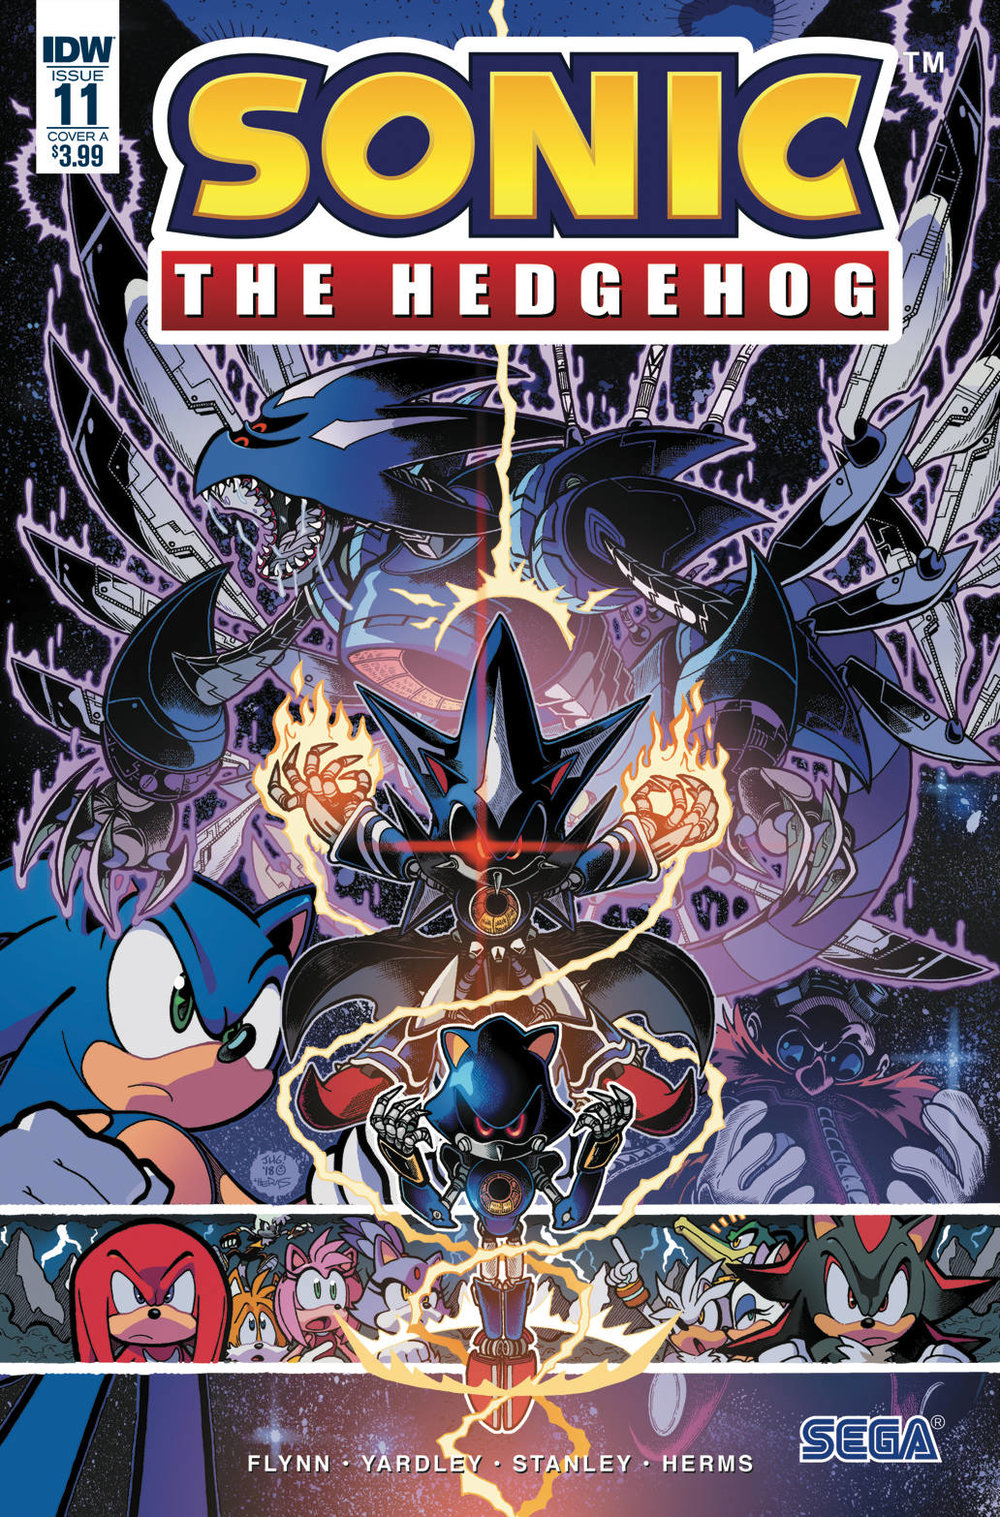 SONIC THE HEDGEHOG 11 CVR A GRAY.jpg